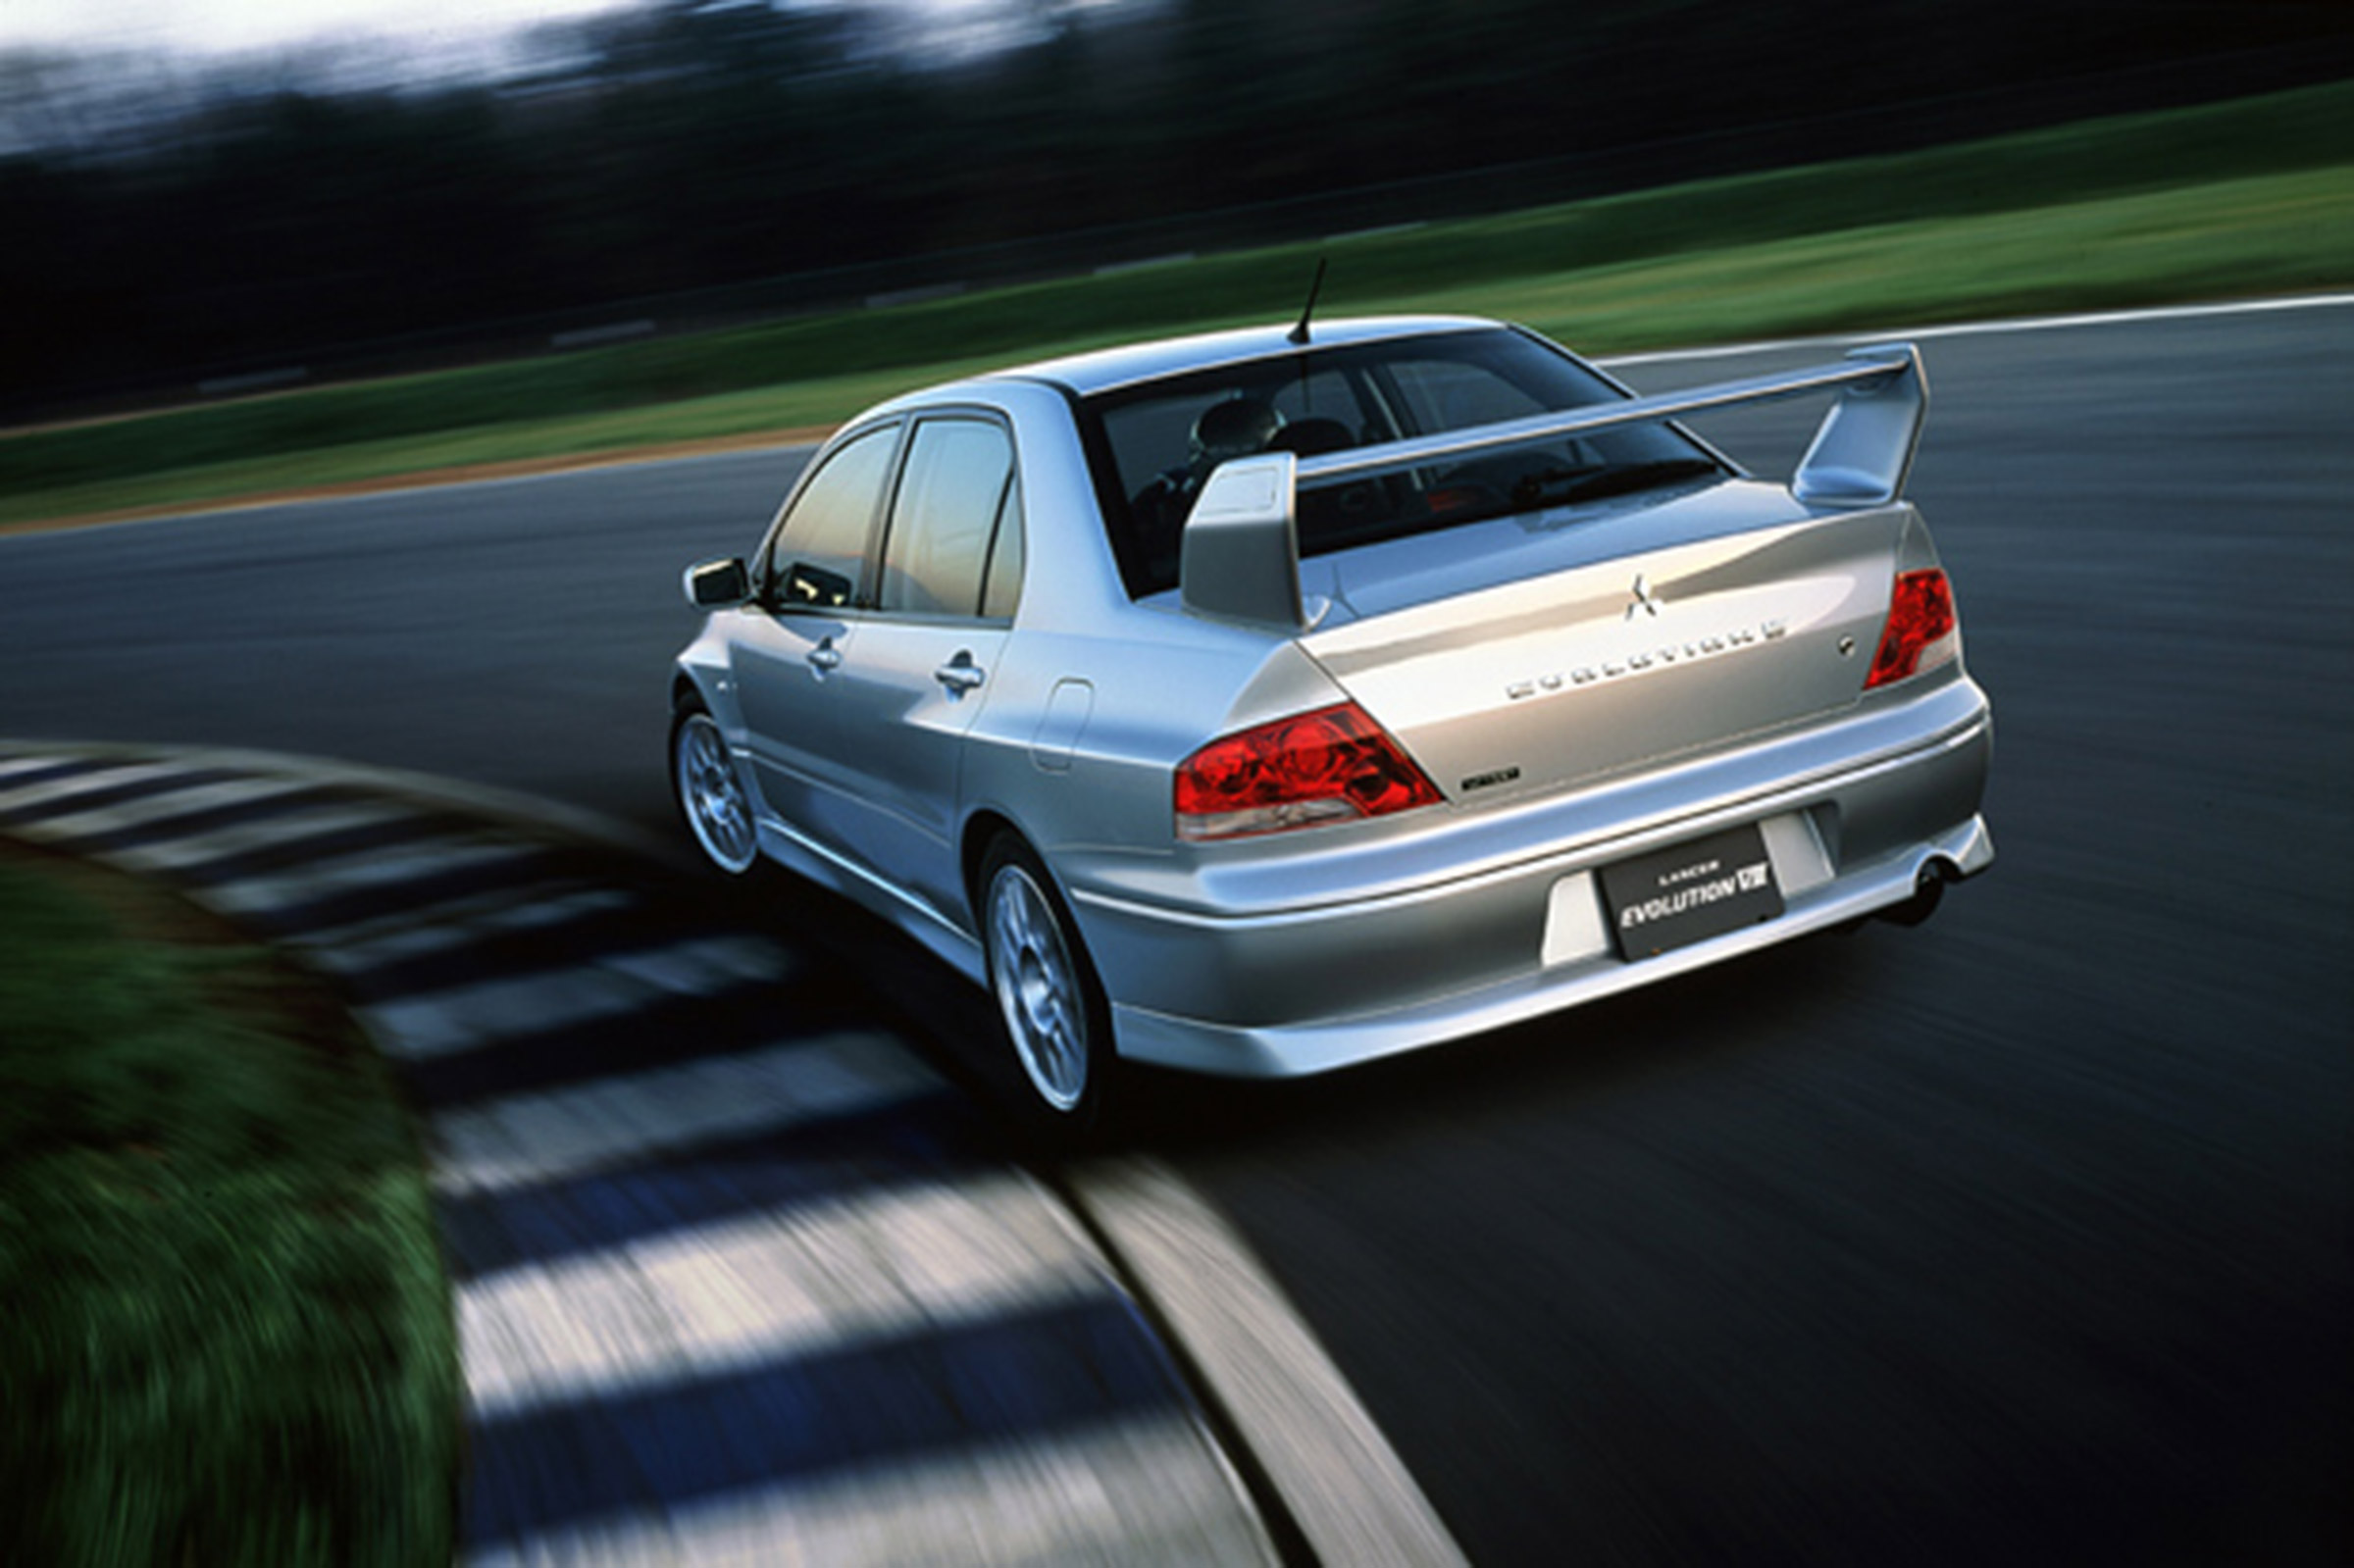 Mitsubishi Lancer Evolution Vii Review History Prices